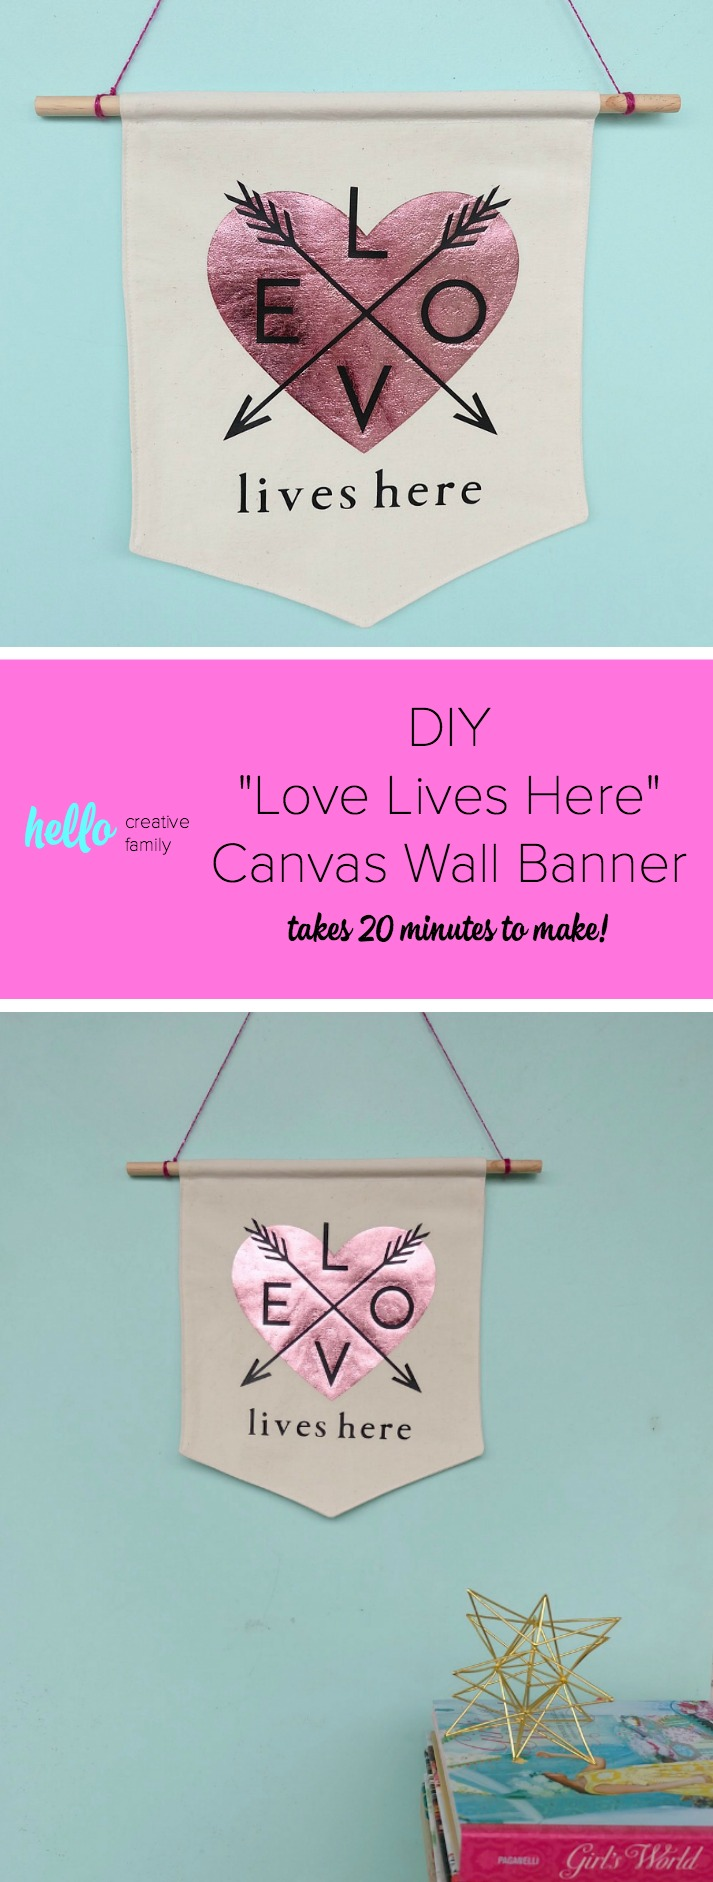 diy canvas wall banner 20 minute sewing tutorial